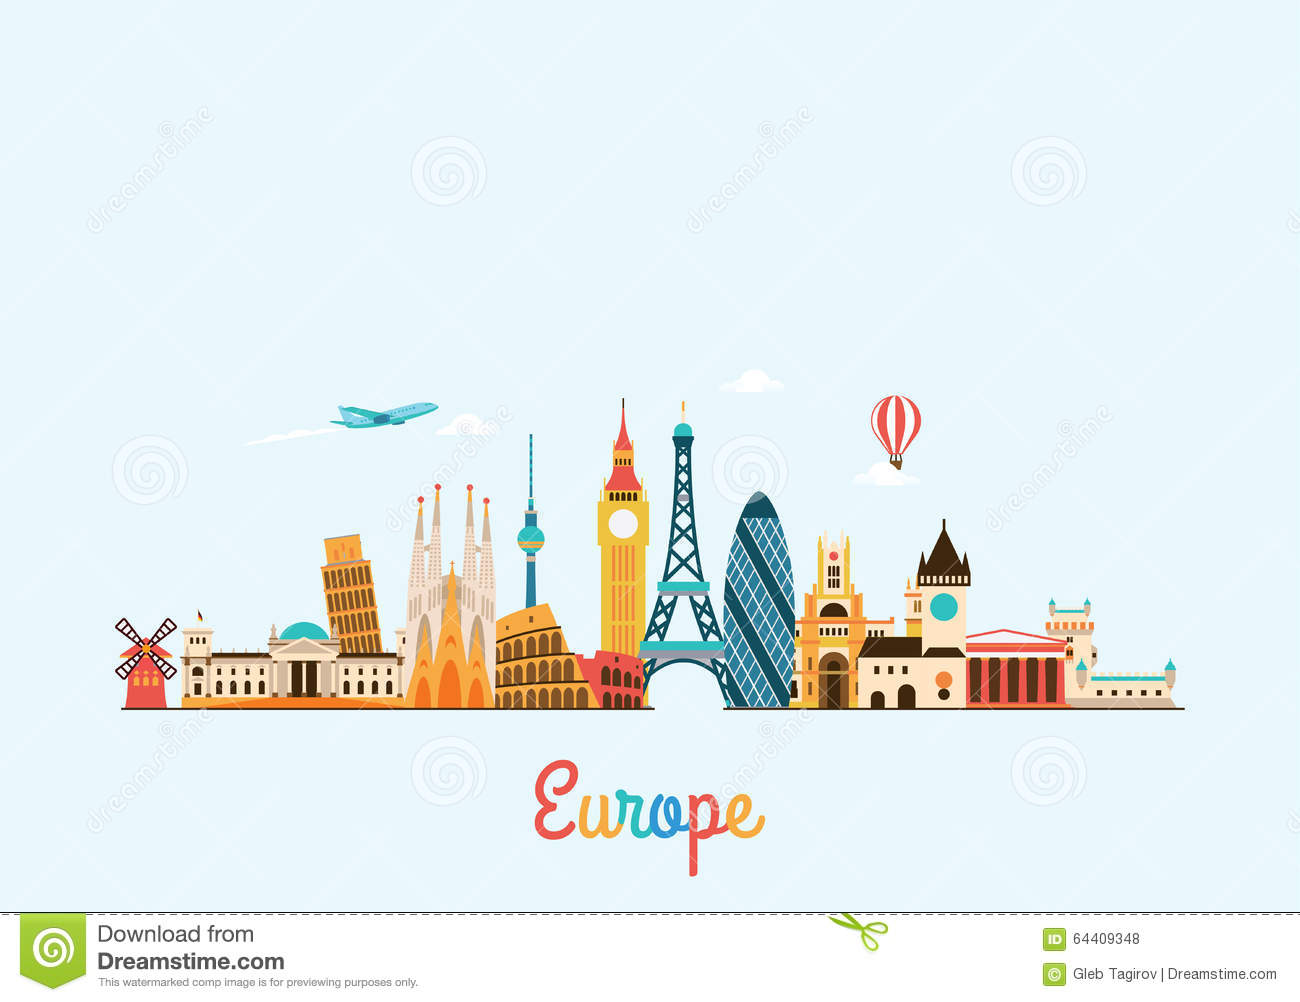 European travel clipart.